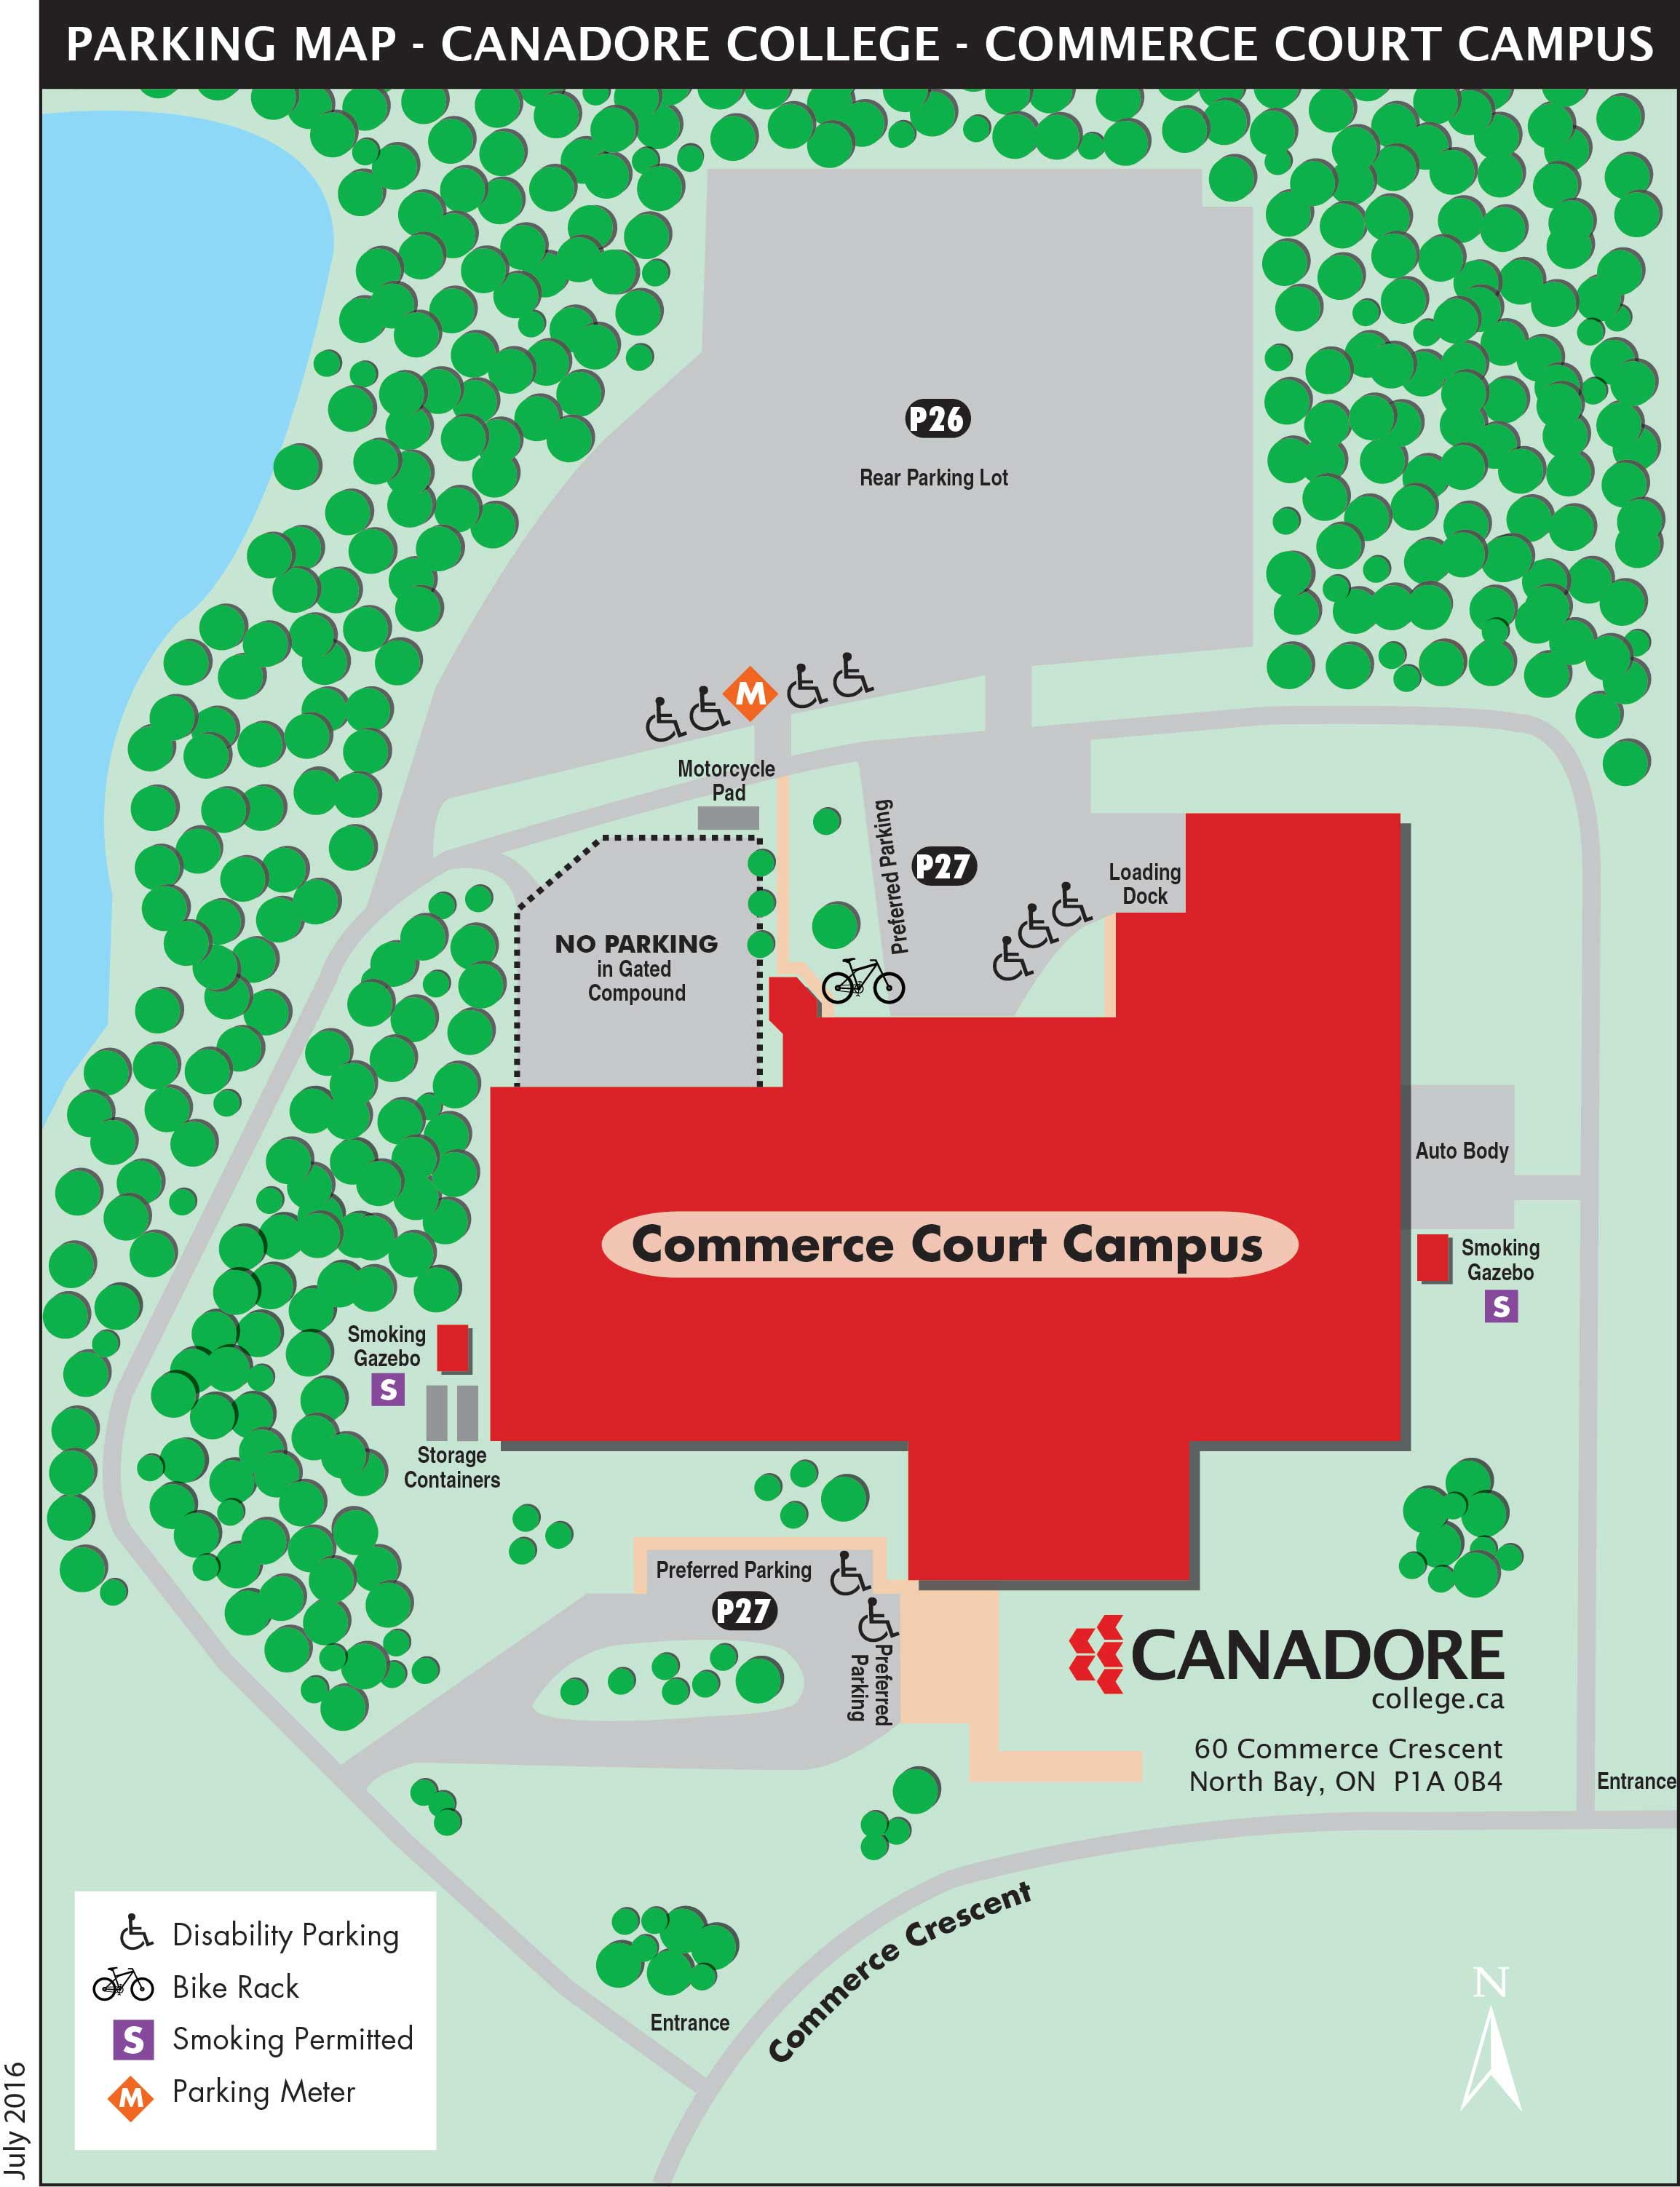 Parking Services Canadore College